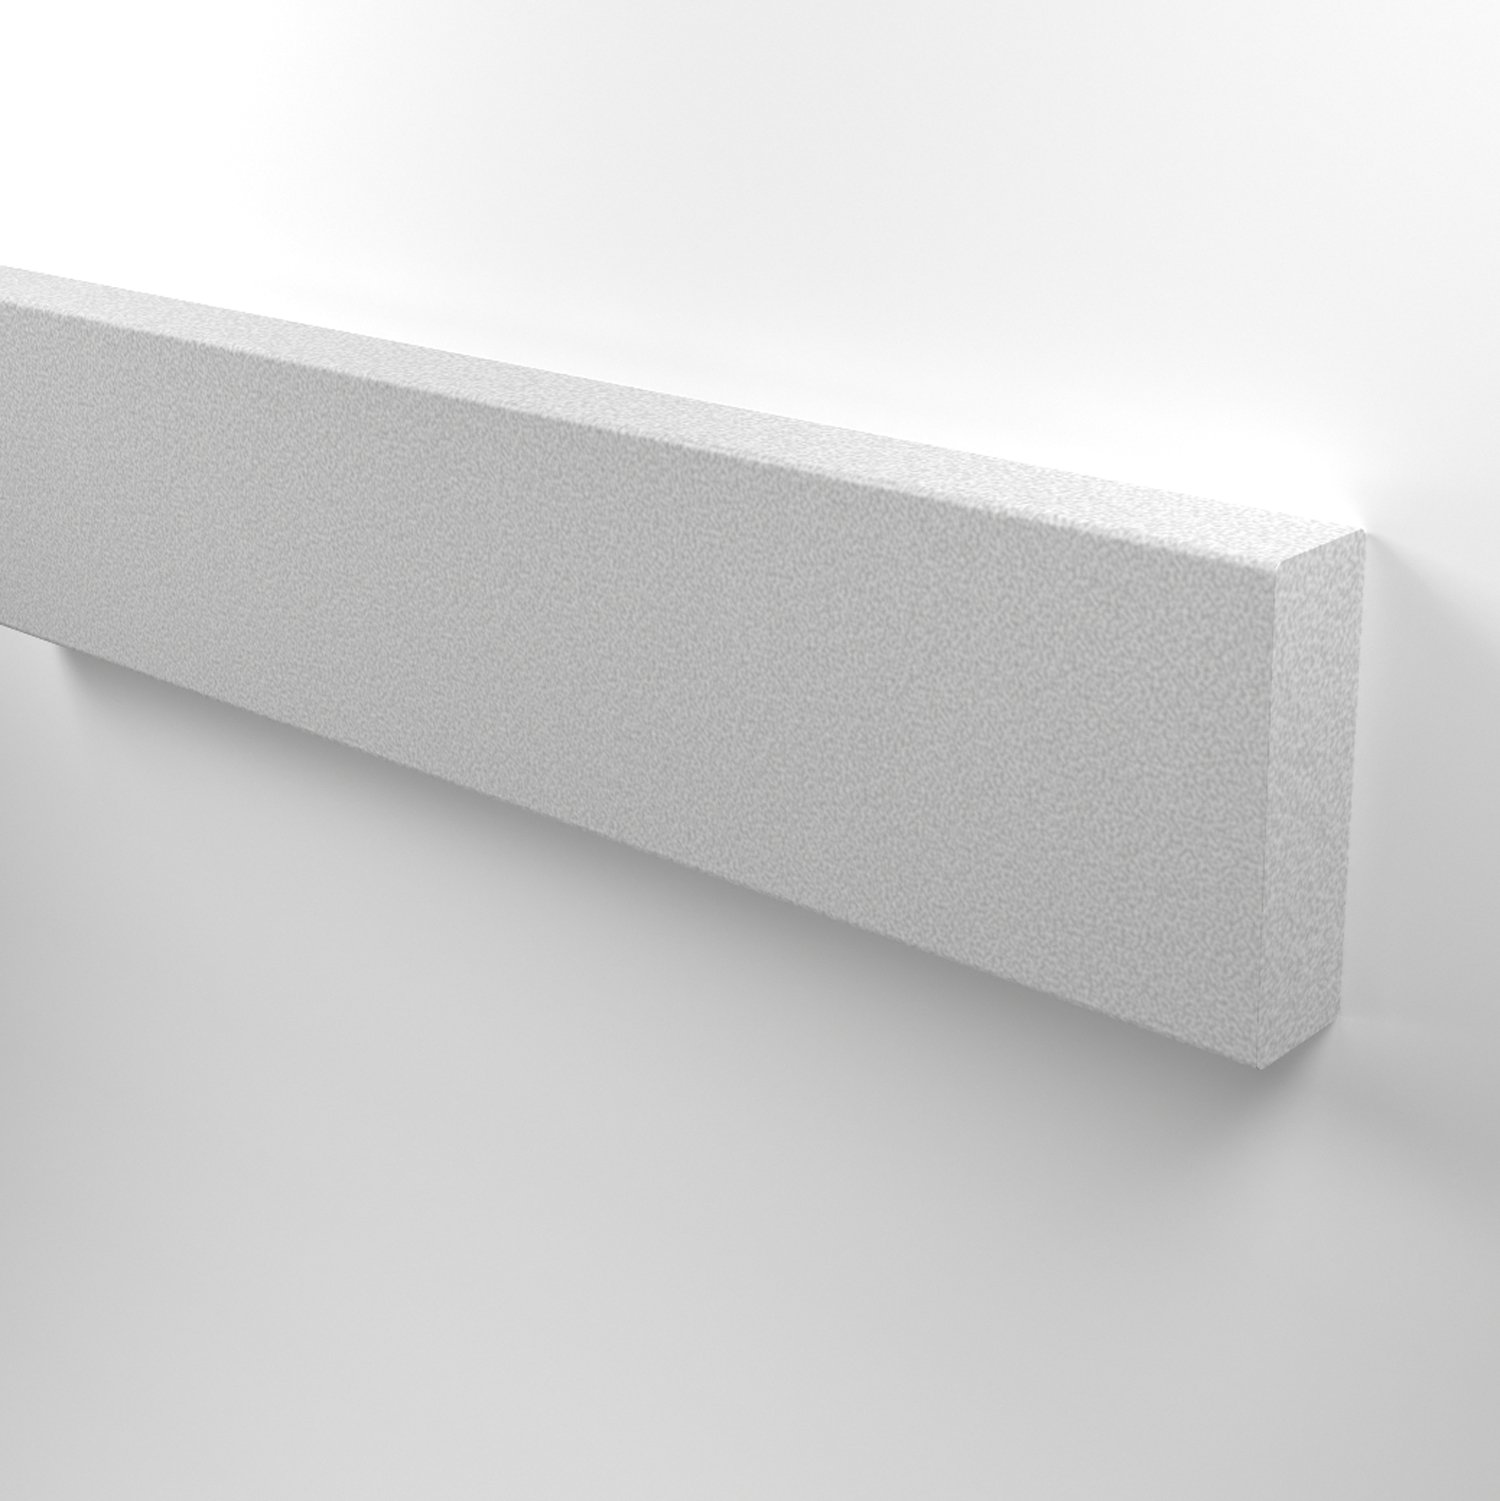 "NuTree Wall Guards in White 1 1/2"" thickness"